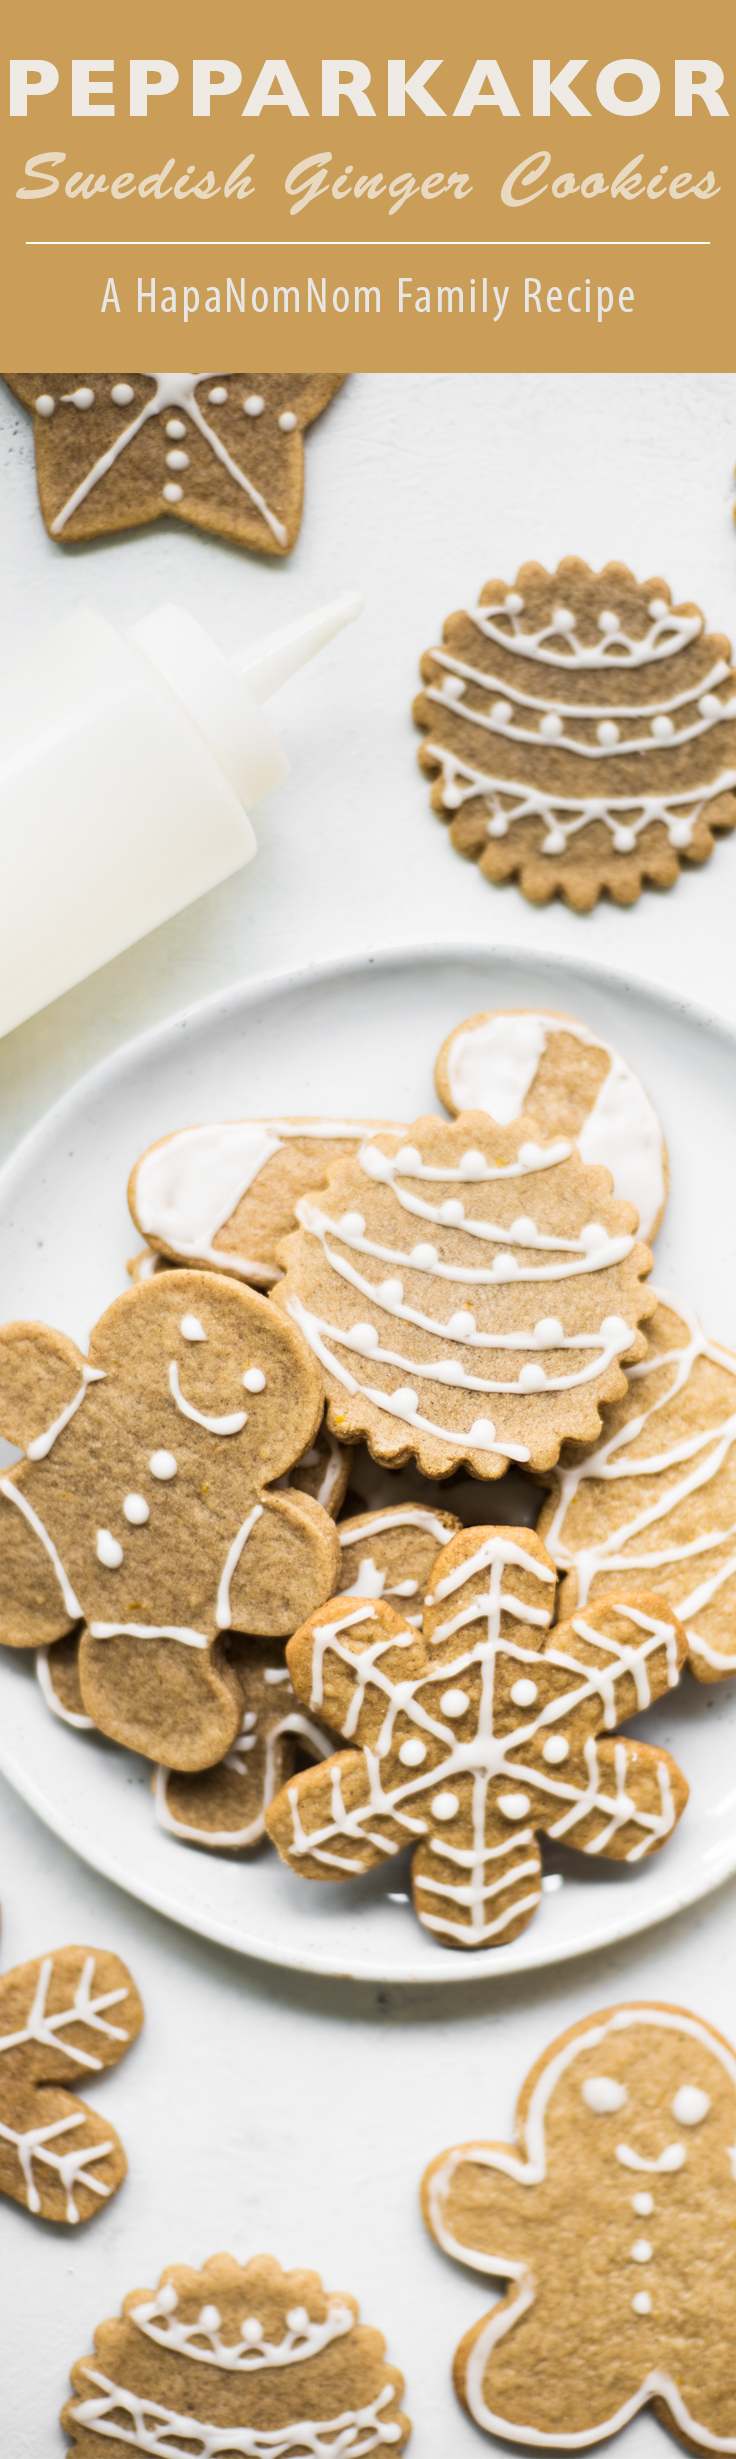 Pepparkakor (Swedish Ginger Cookies) - a family recipe and Christmas cookie favorite! These thin spiced cookies make the holidays extra special.